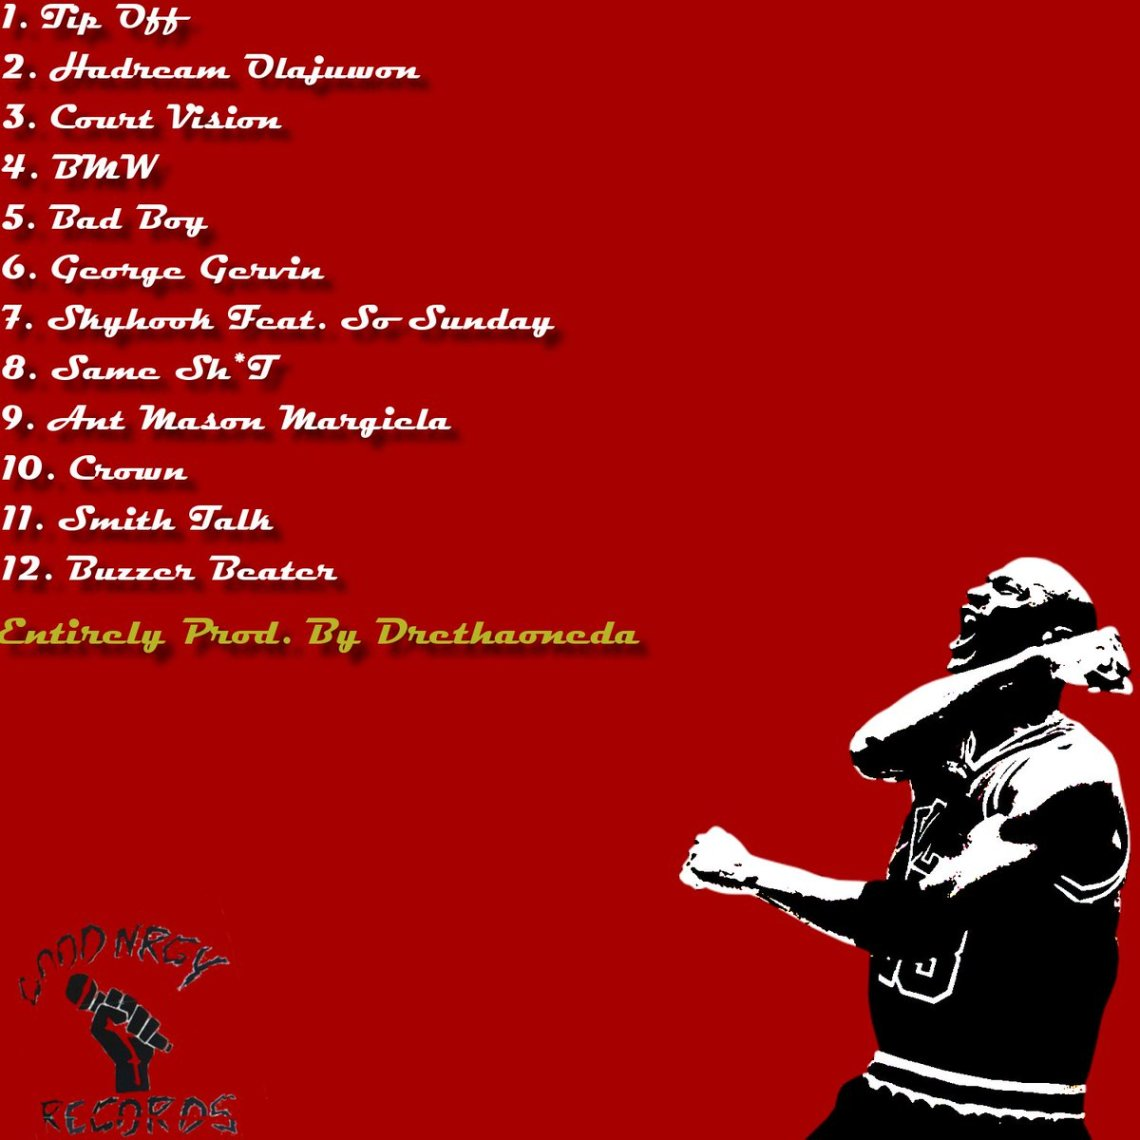 Jus Smith Game 7 tracklist